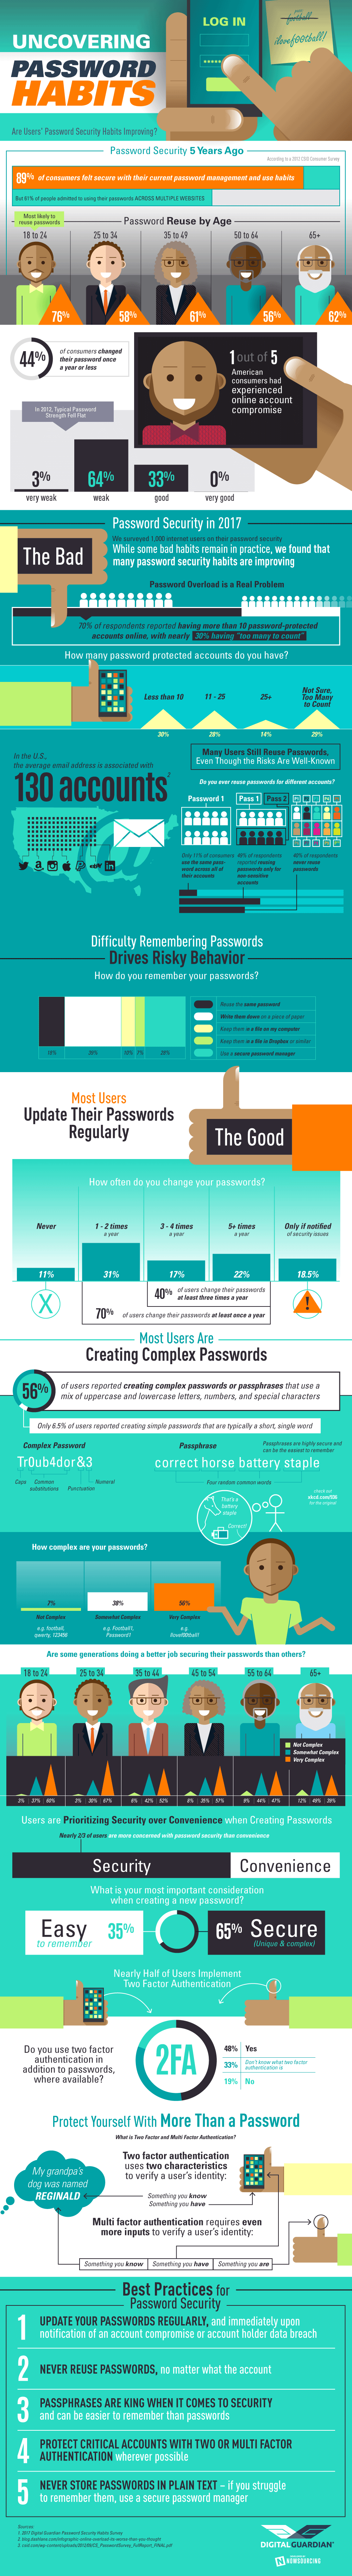 Uncovering Password Habits: Are Users' Password Security Habits Improving? Infographic